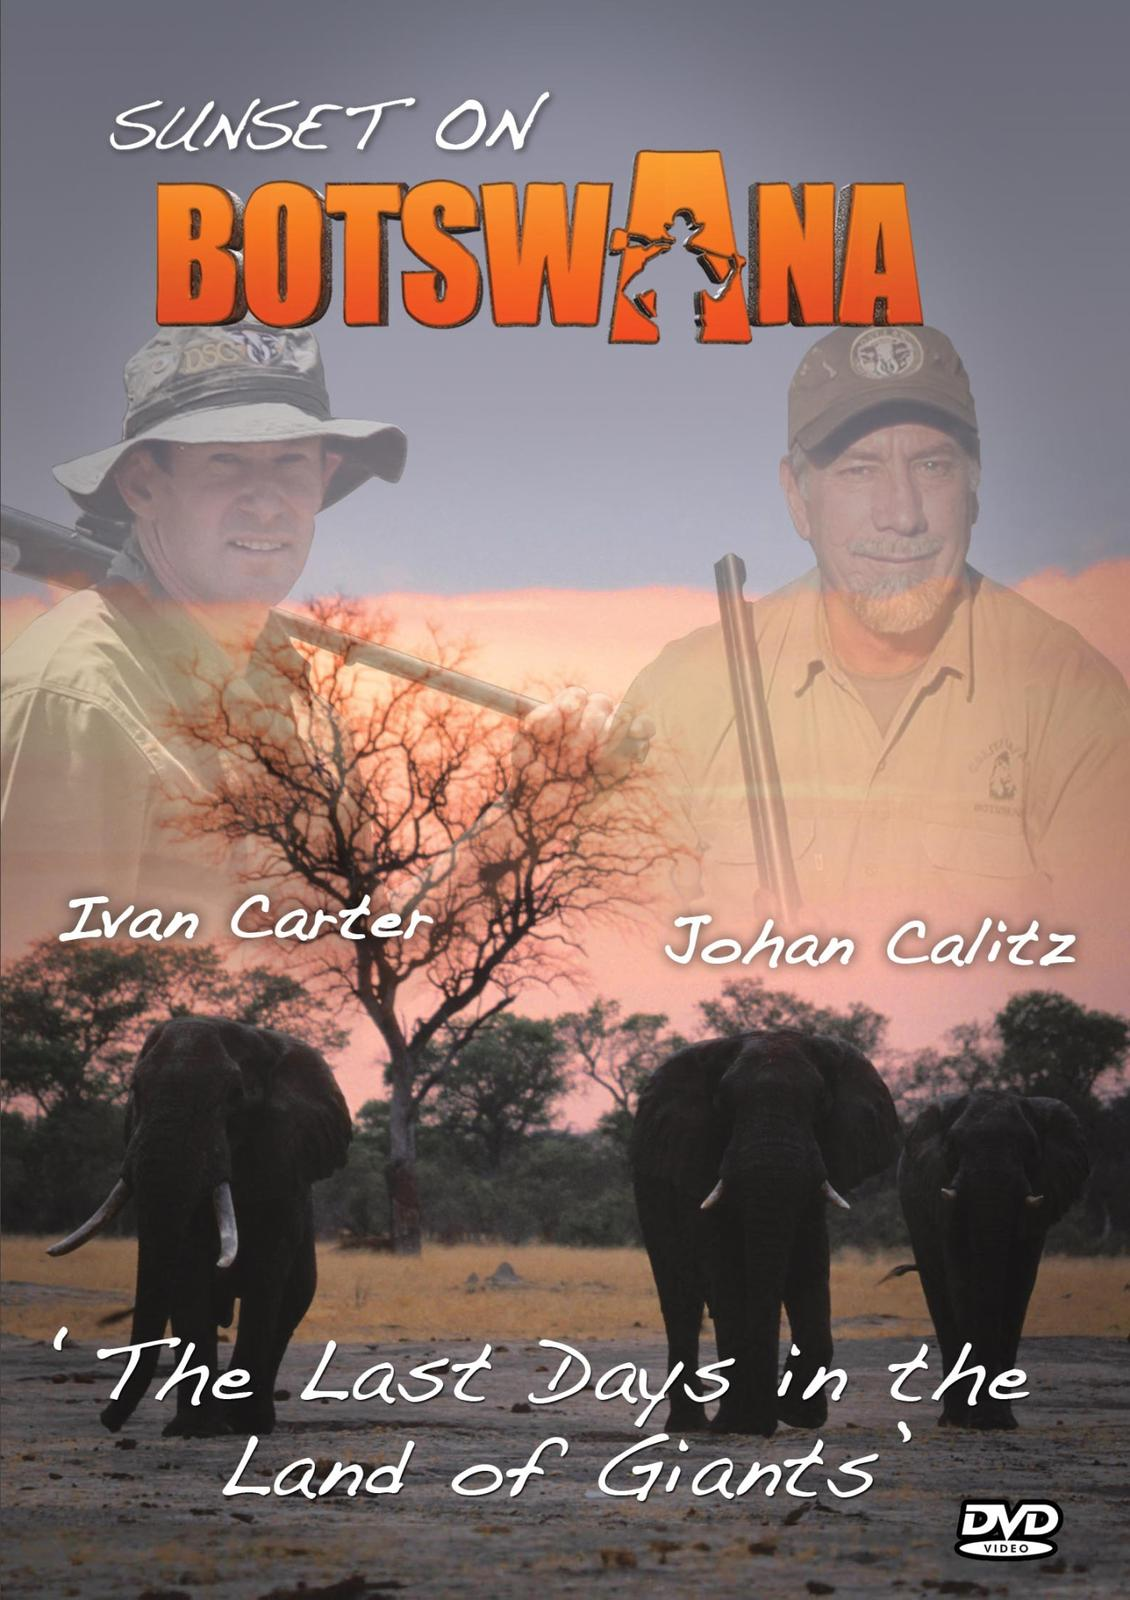 Sunset On Botswana Sunset On Botswana  Sunset On Botswana  Ivan Carter DVDs, Safari Classics Productions